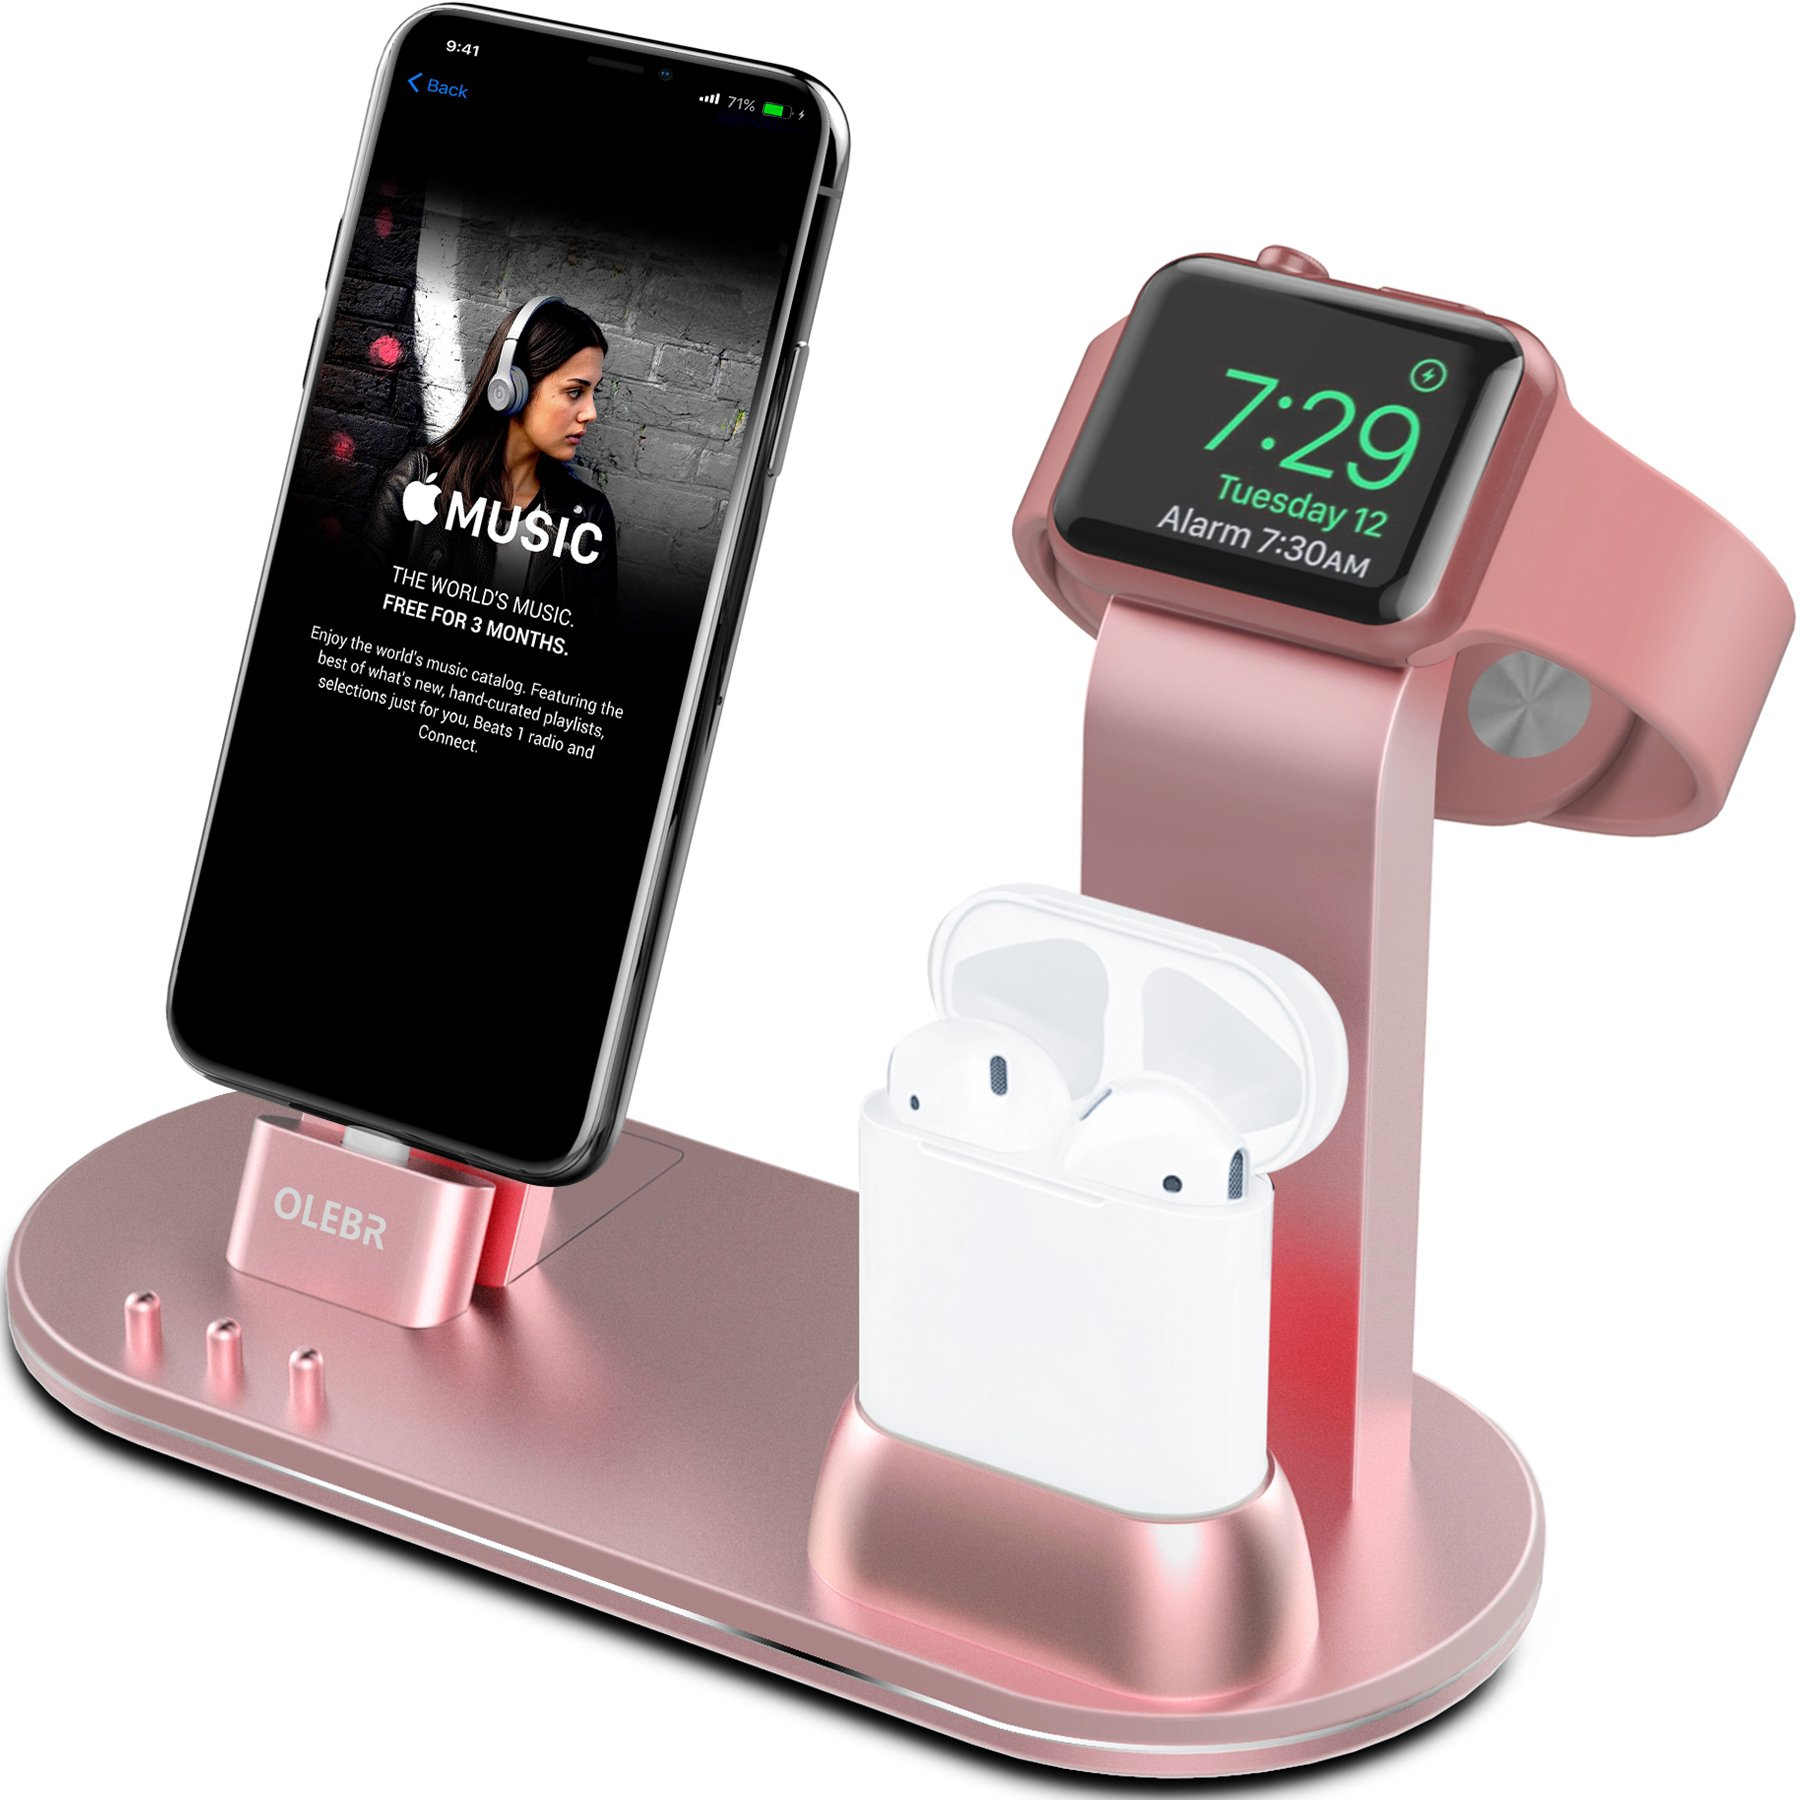 OLEBR Apple Watch Stand Apple Watch Charging Stand AirPods Stand Charging Docks for Apple Watch Series 3/2/1/ AirPods/iPhone X/8/8Plus/7/7 Plus /6S /6S Plus/iPad-Rose Gold